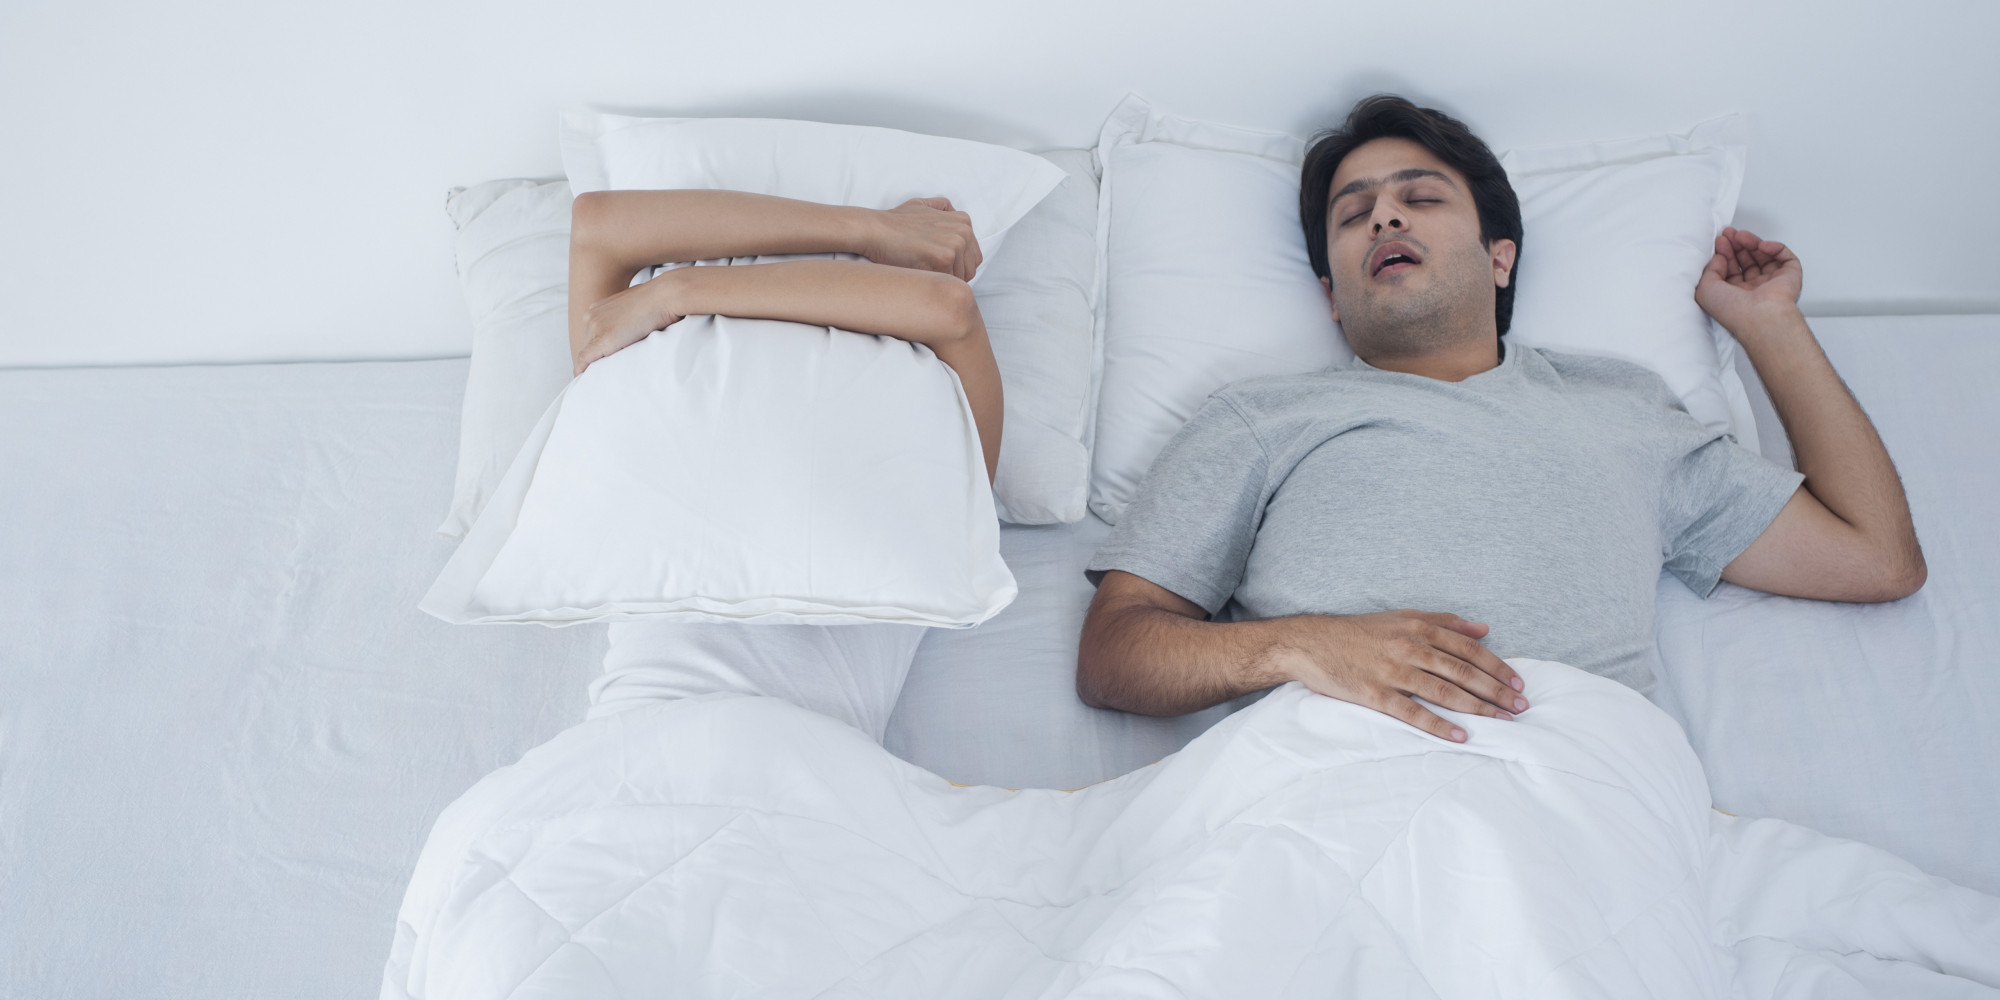 Humans Have Been Searching for a Snoring Cure for Millennia